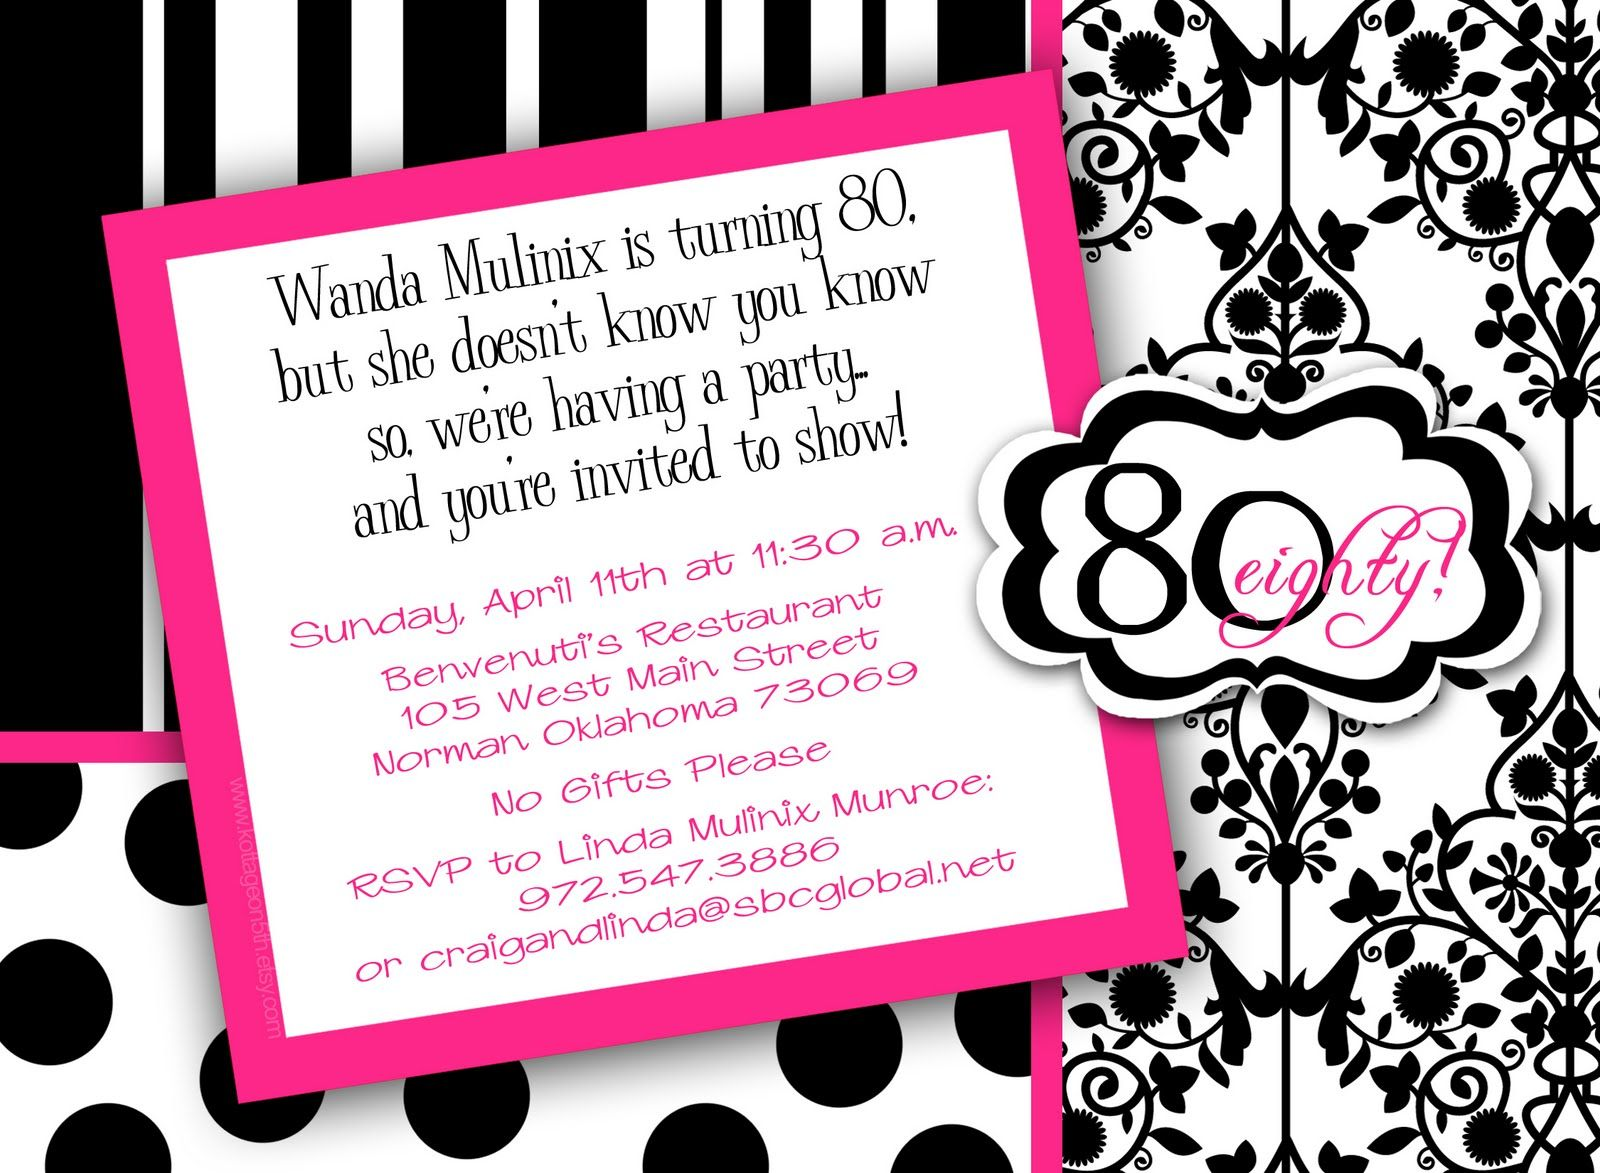 invitation to 80th birthday party free template ; f737b0323c48c7b76c3d09367a86aa9f